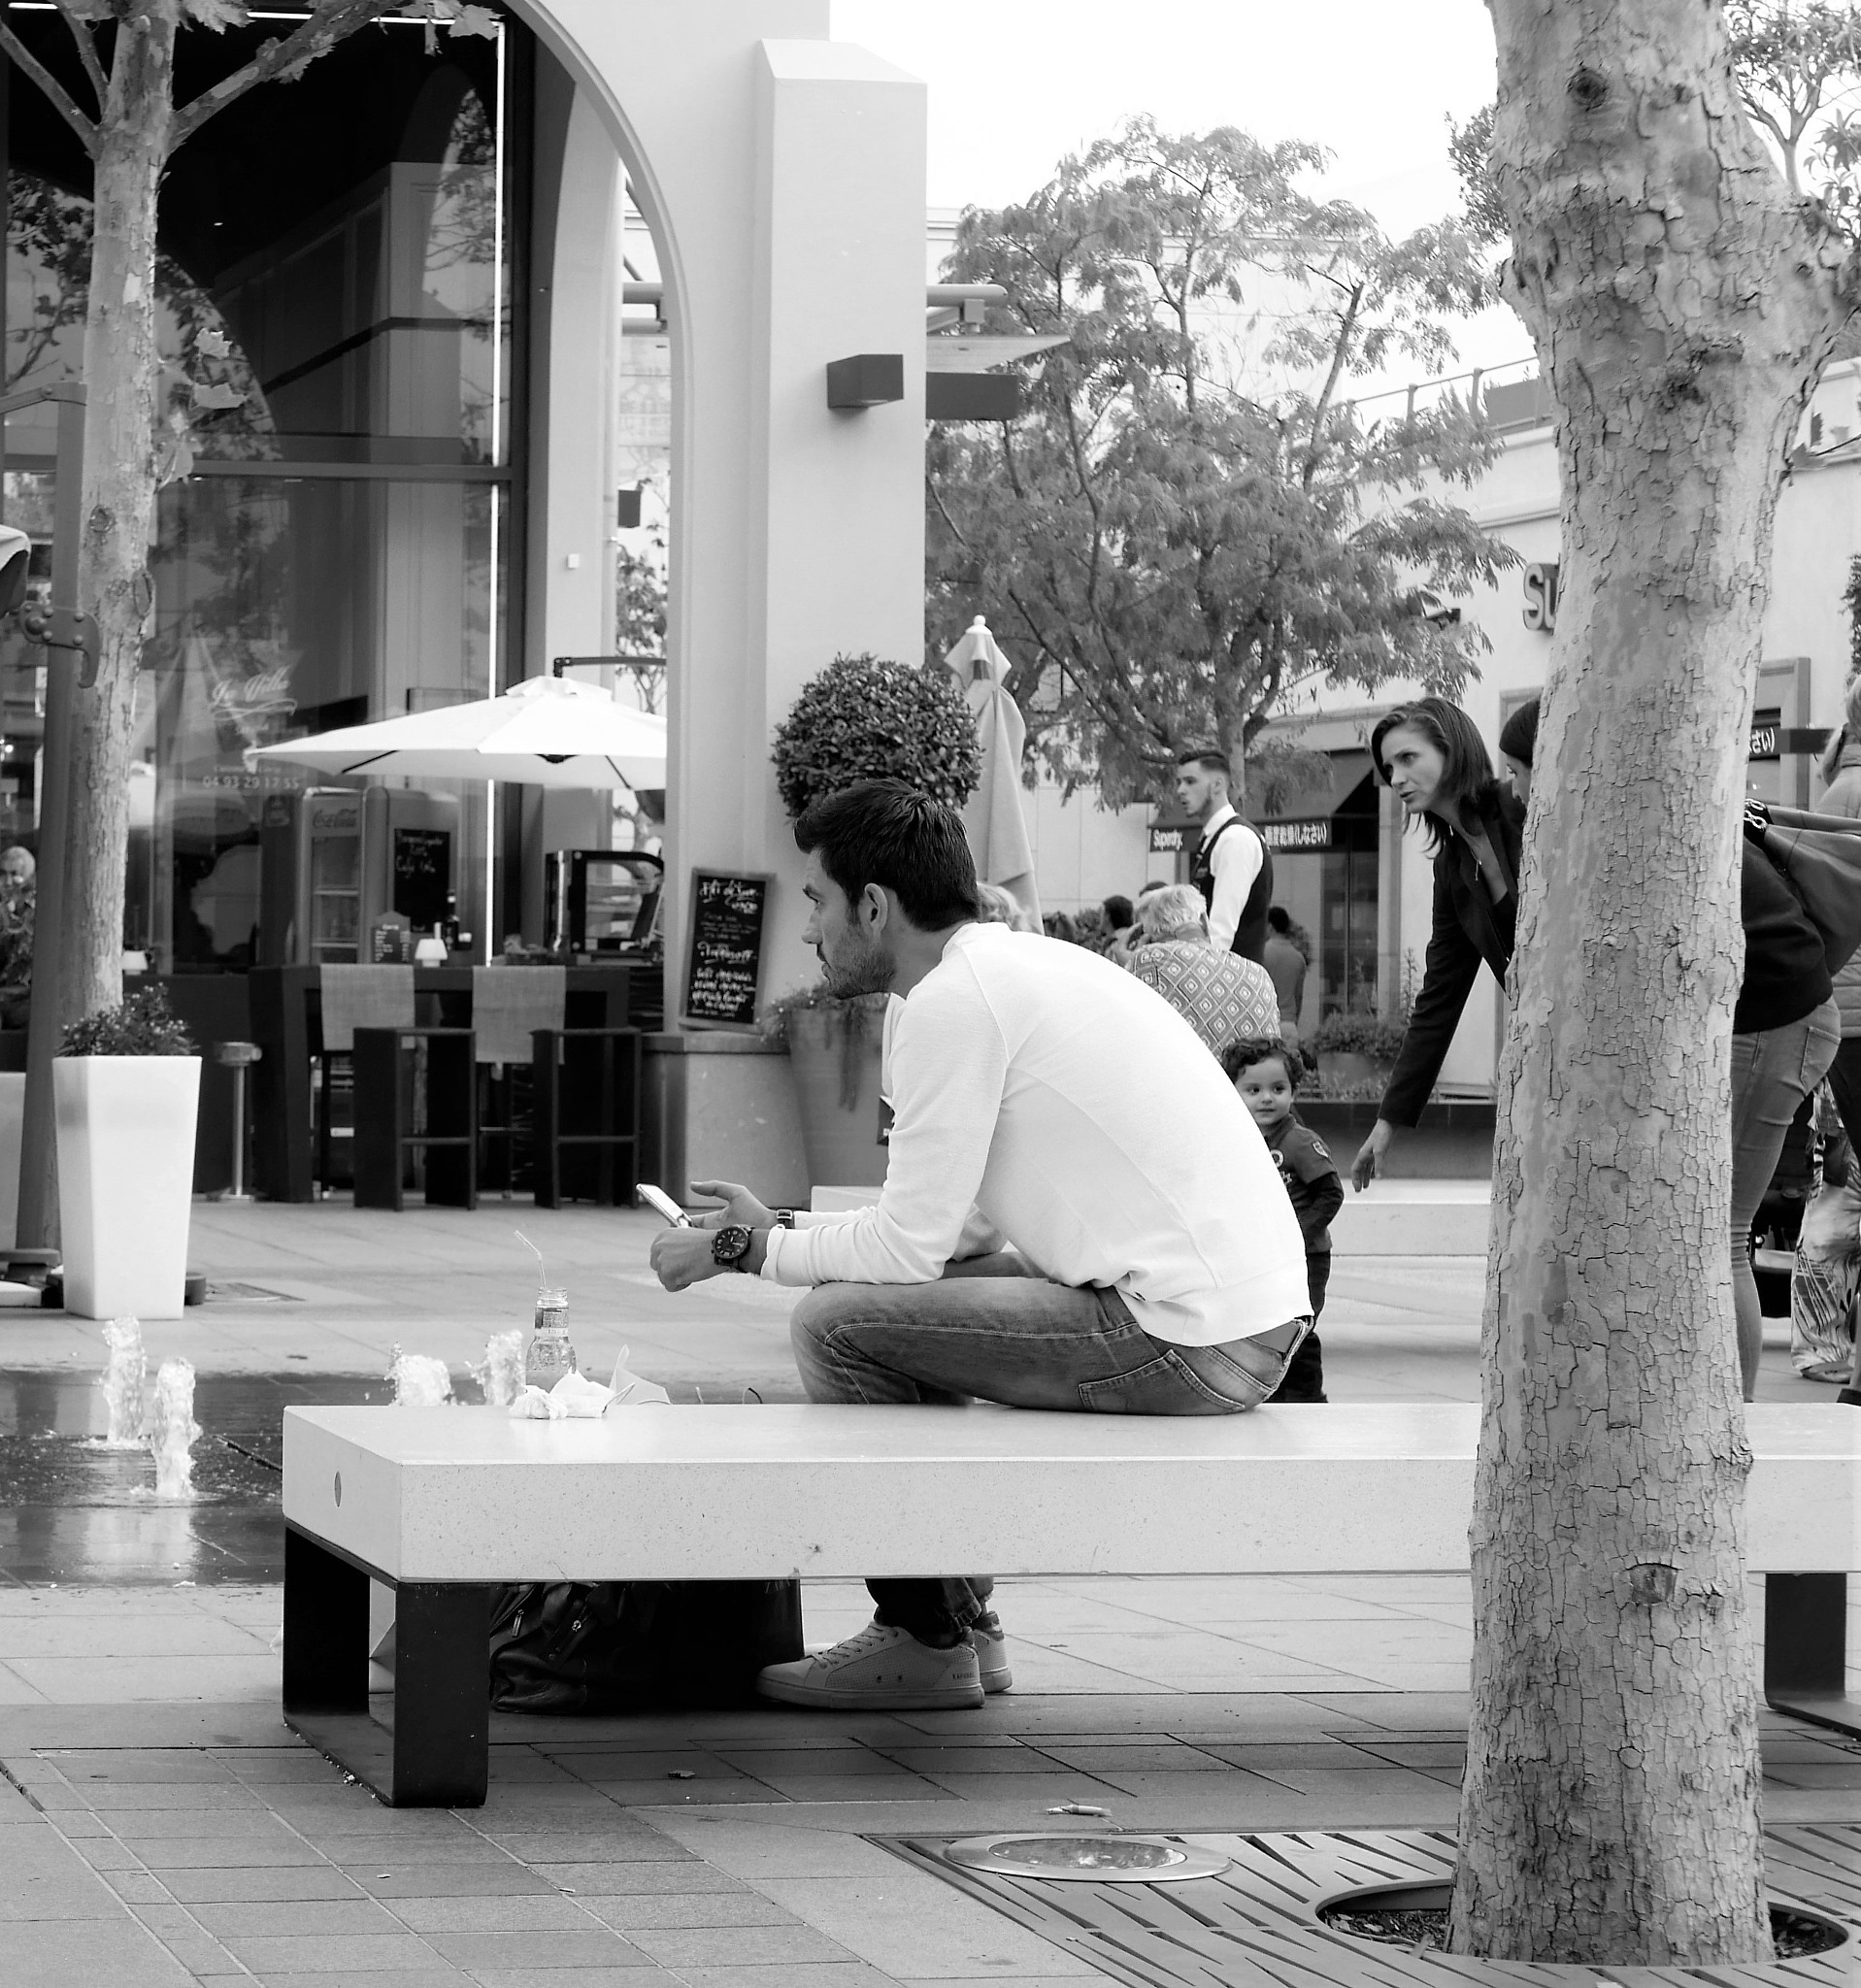 Texting. Polygone Riviera, Shopping Centre by tony cullen